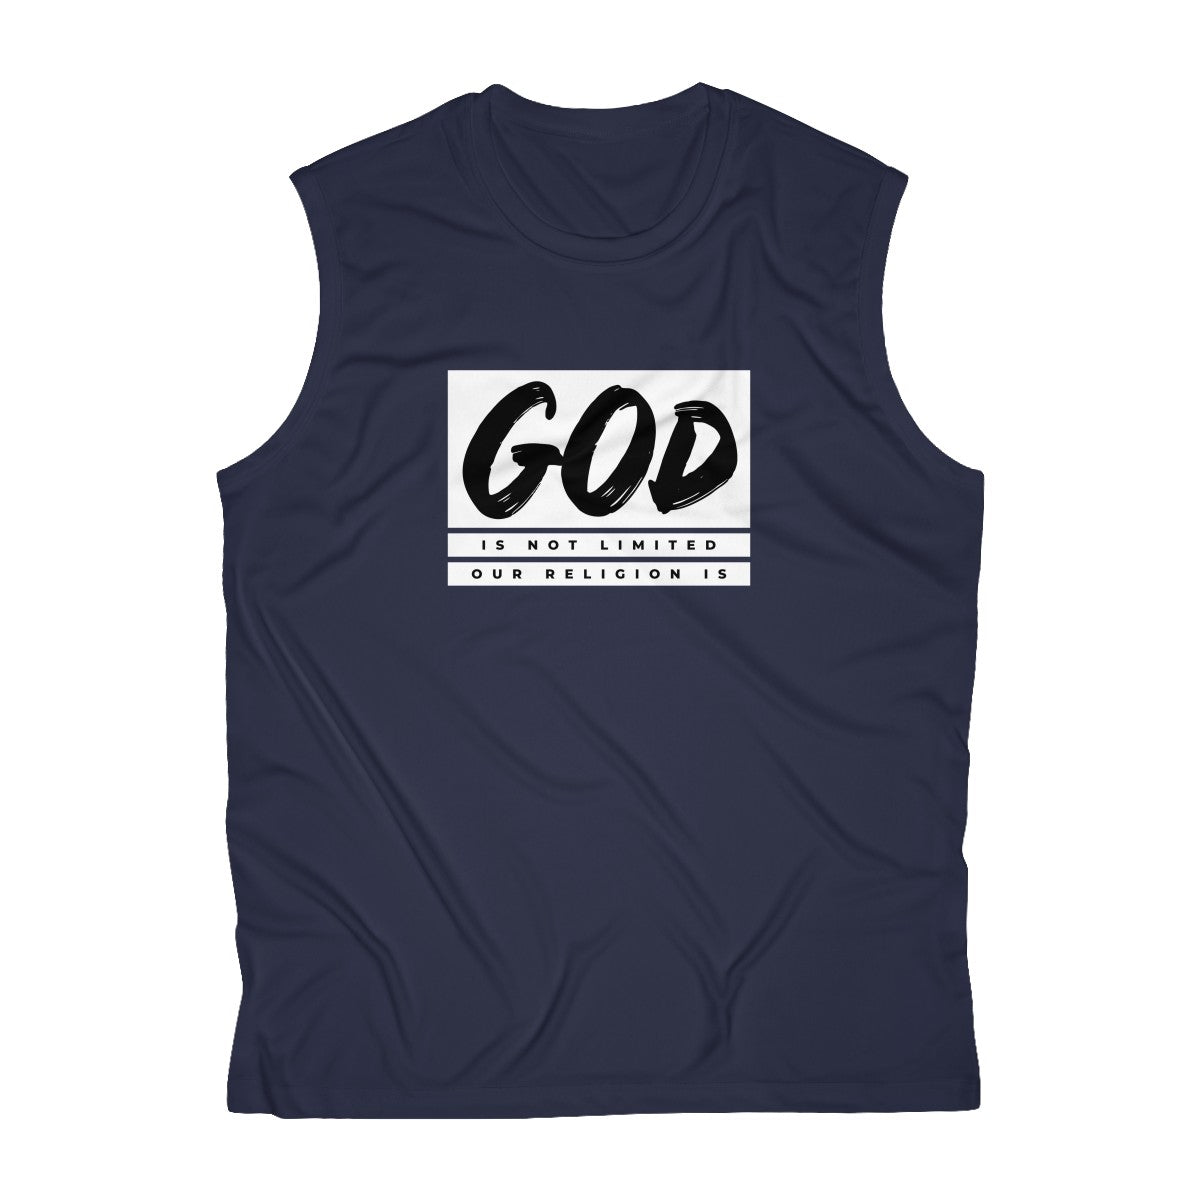 God Is Not Limited Our Religion Is Men's Sleeveless Performance Tee